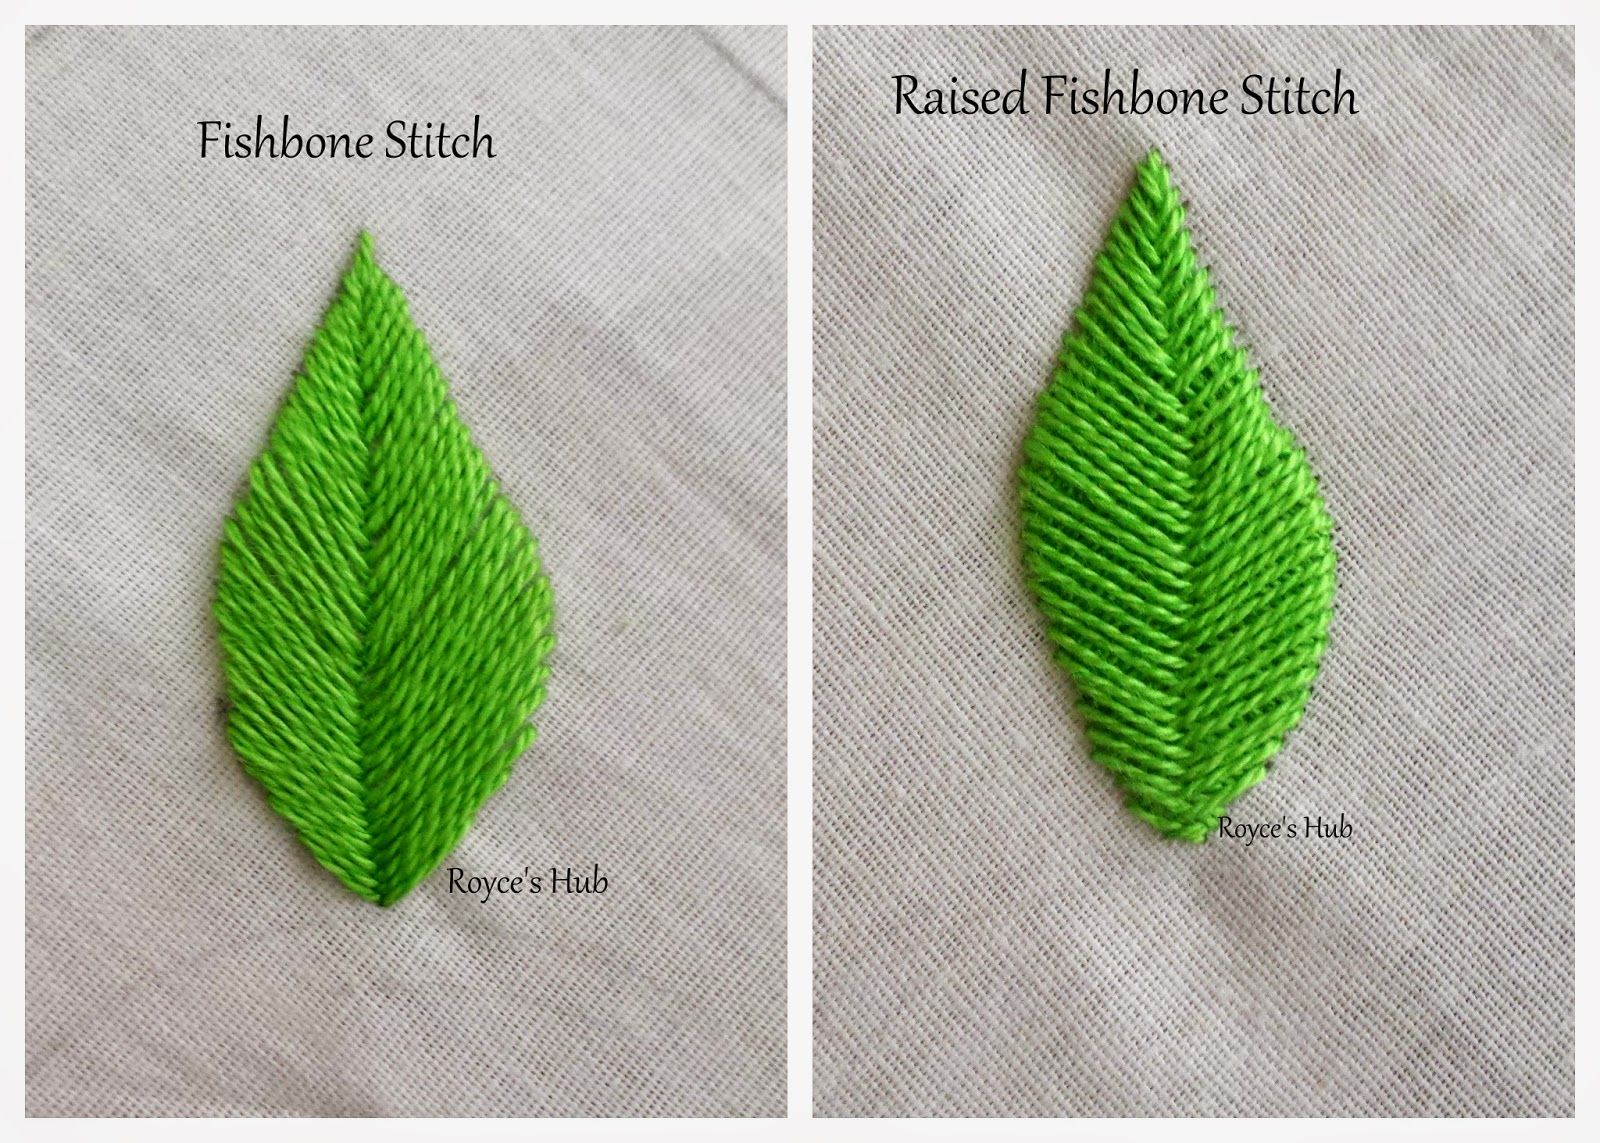 Royce's Hub Embroidery Stitches For Leaves  Fishbone Stitch and ...